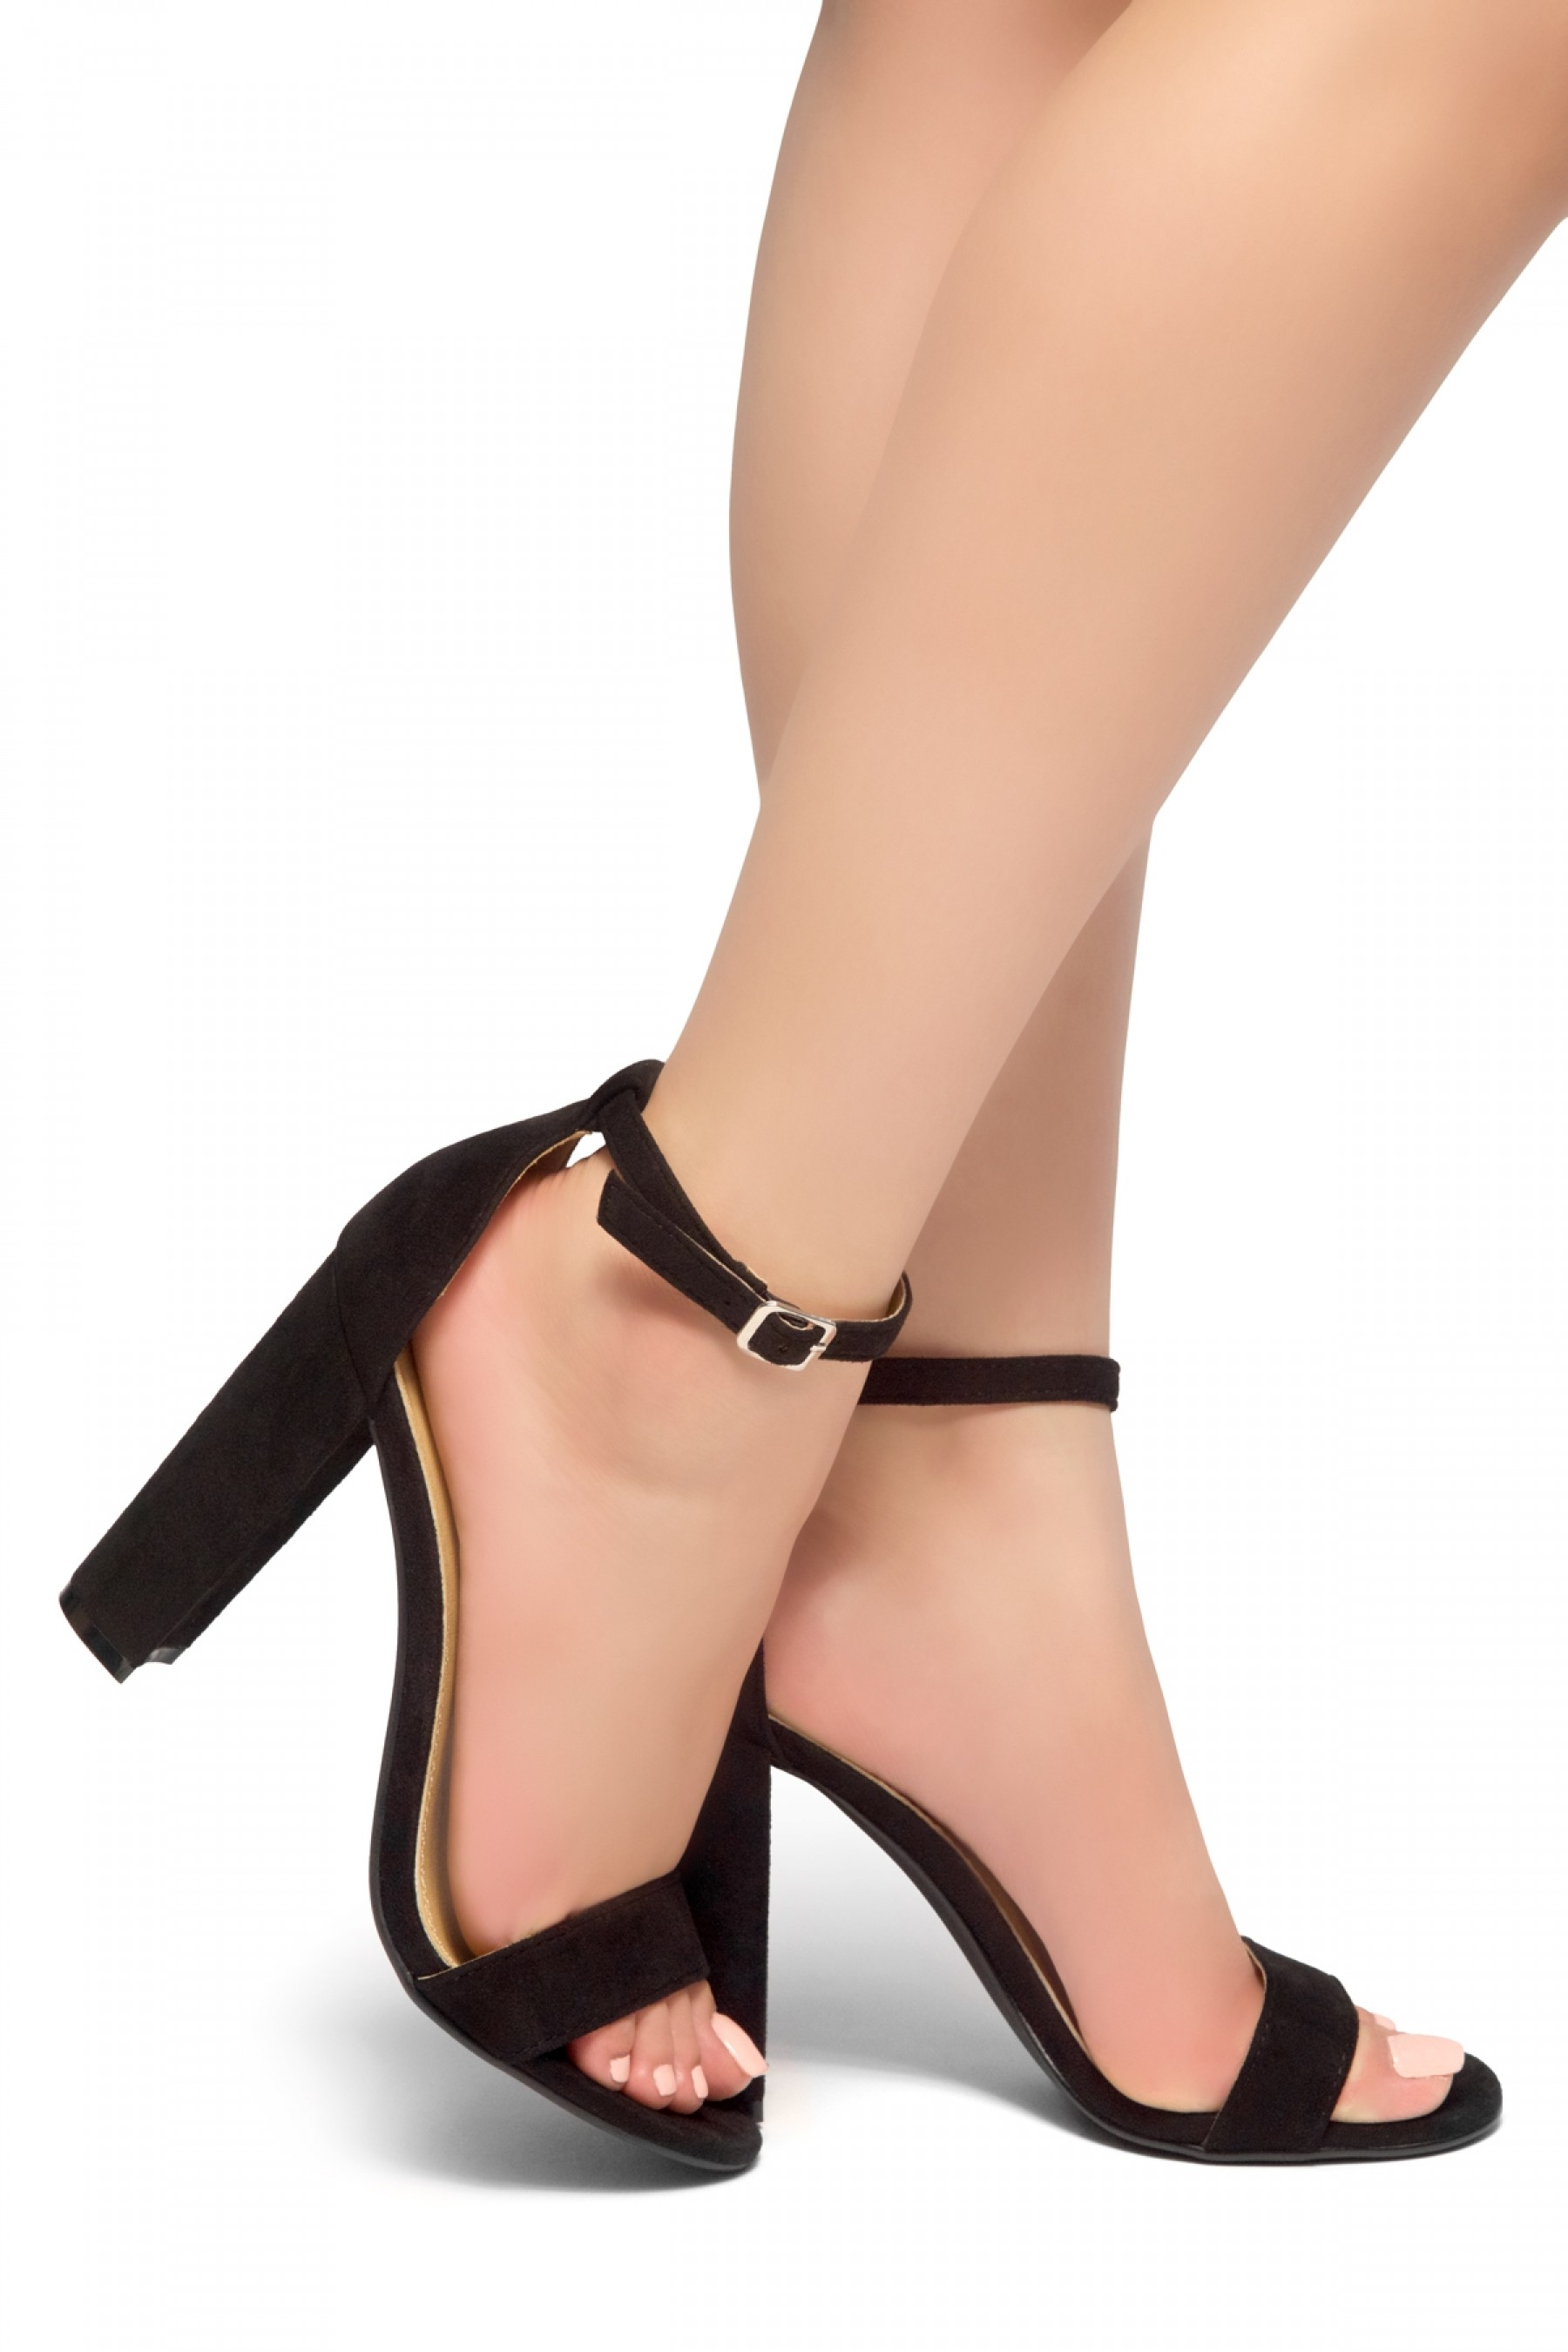 Strap Around The Ankle Heels